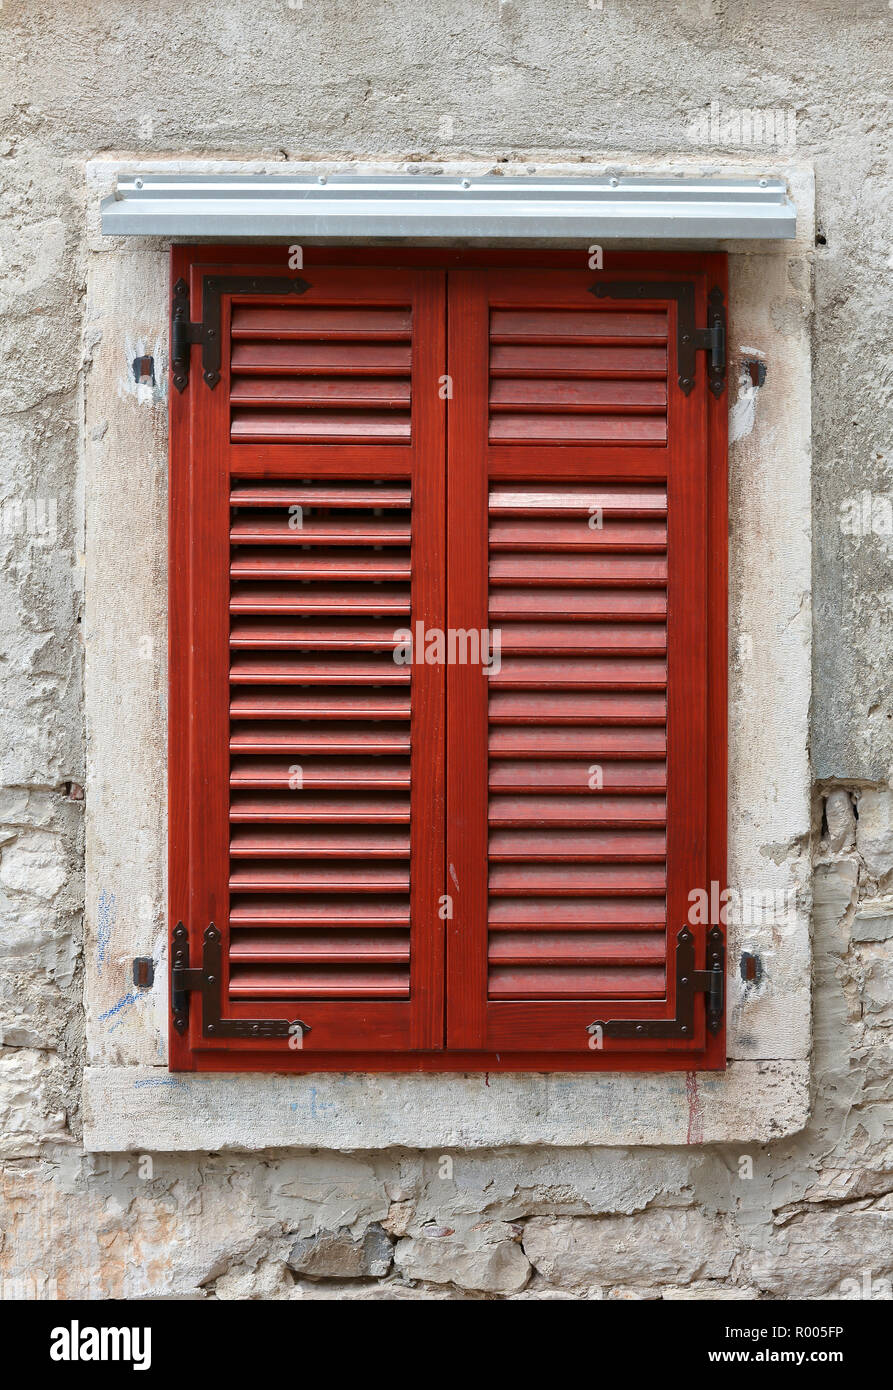 Window with red shutters in the historic city of Pula - Stock Image